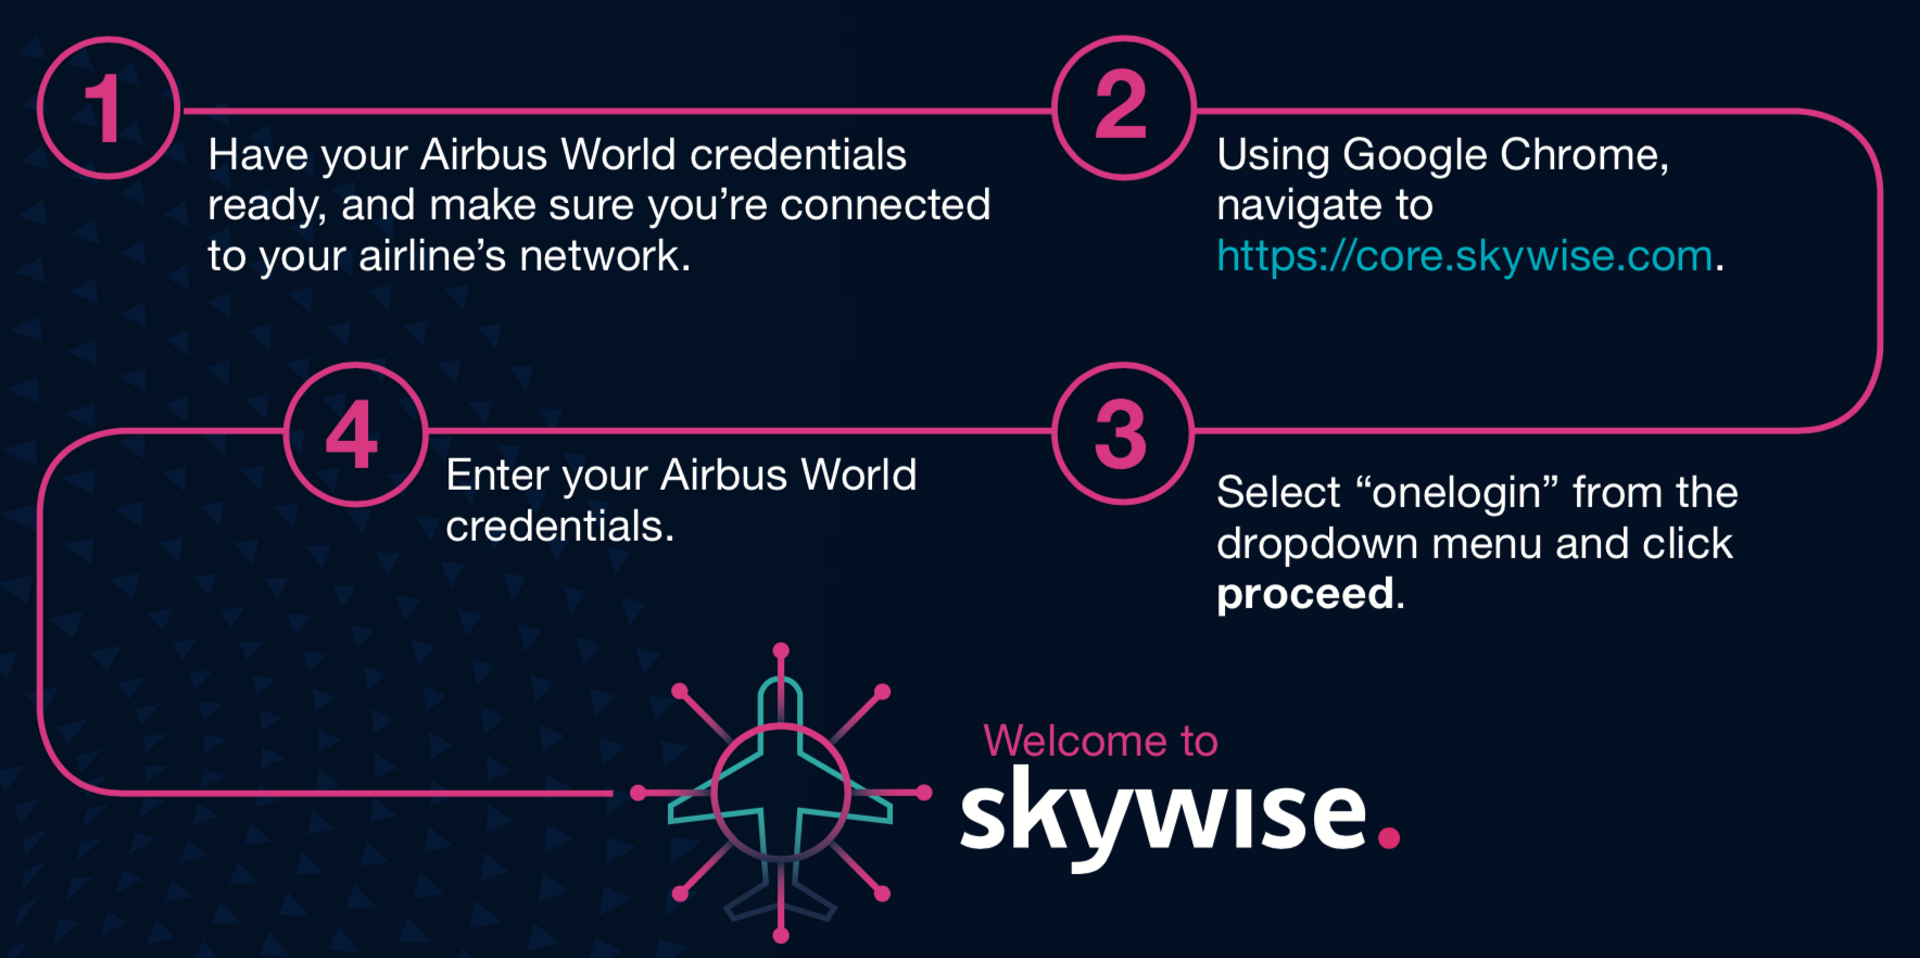 Accessing Skywise